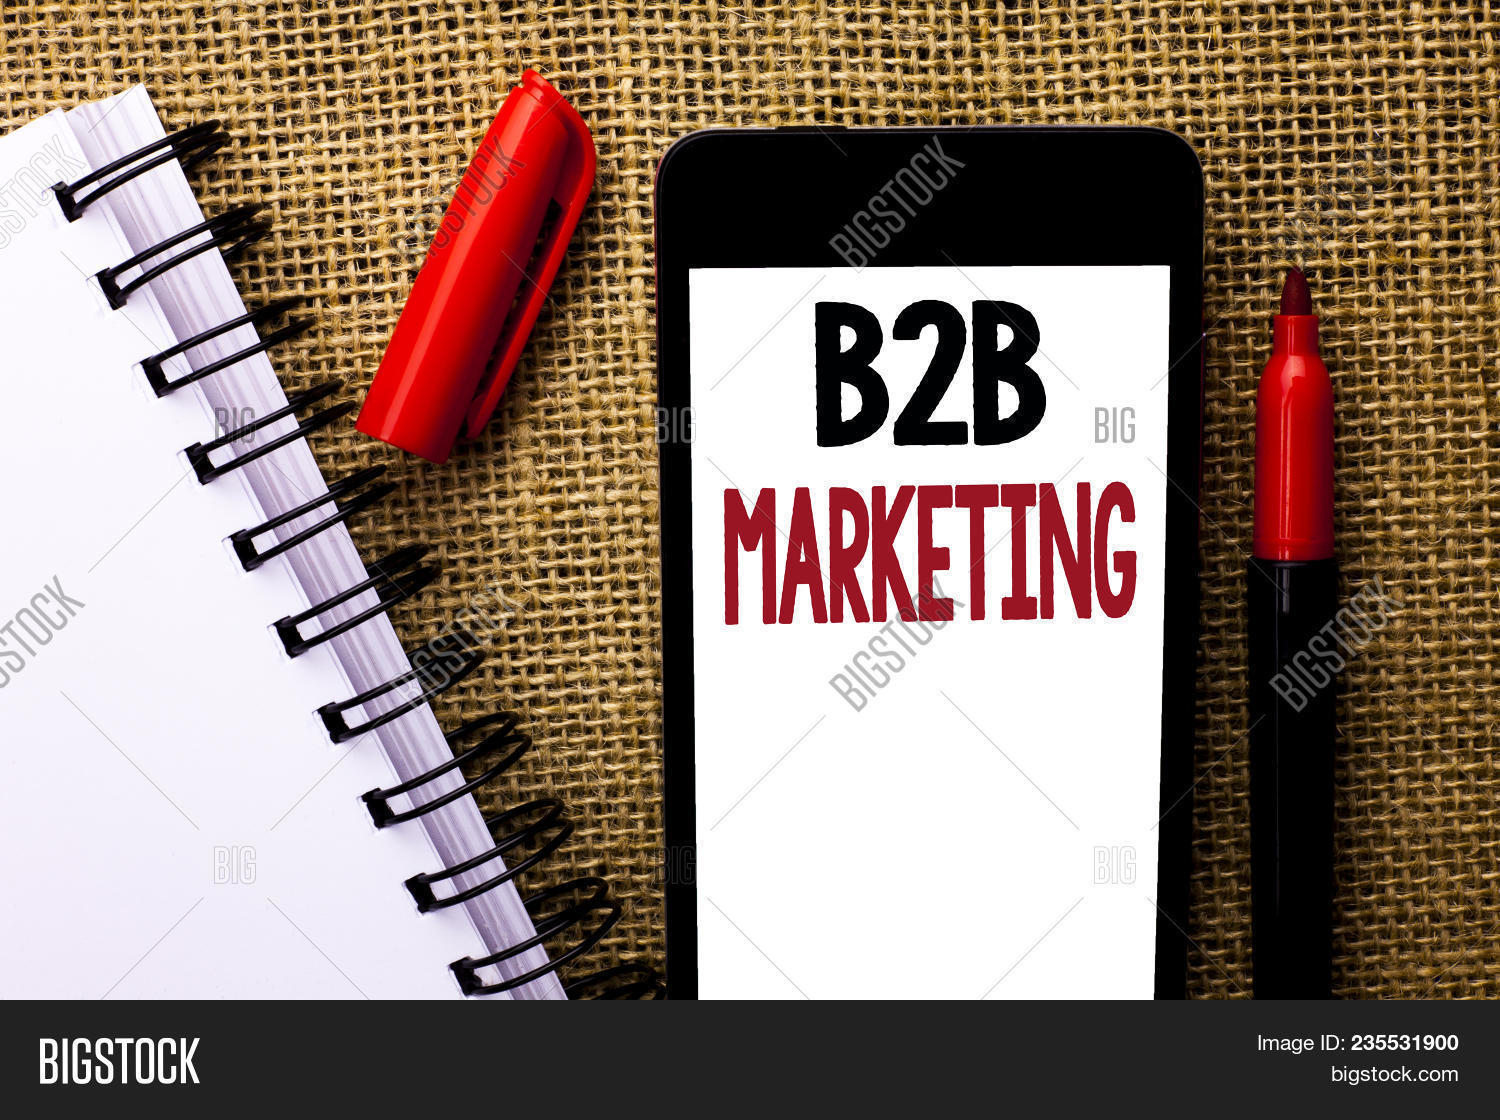 Handwriting Text B2b Image & Photo (Free Trial) | Bigstock